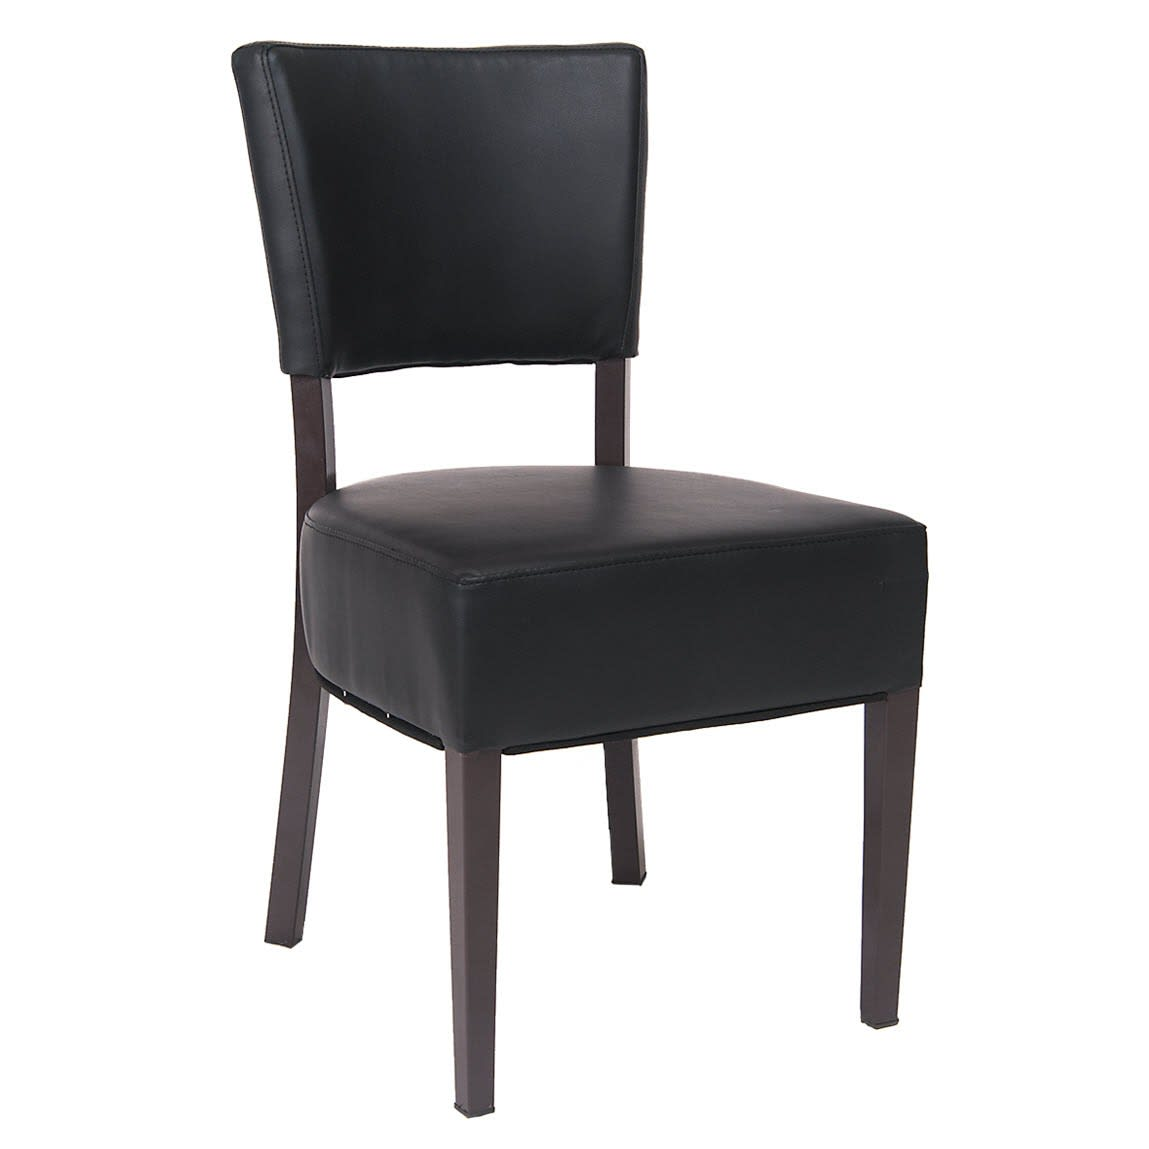 Brown Metal Chair with Black Vinyl Padded Back and Seat